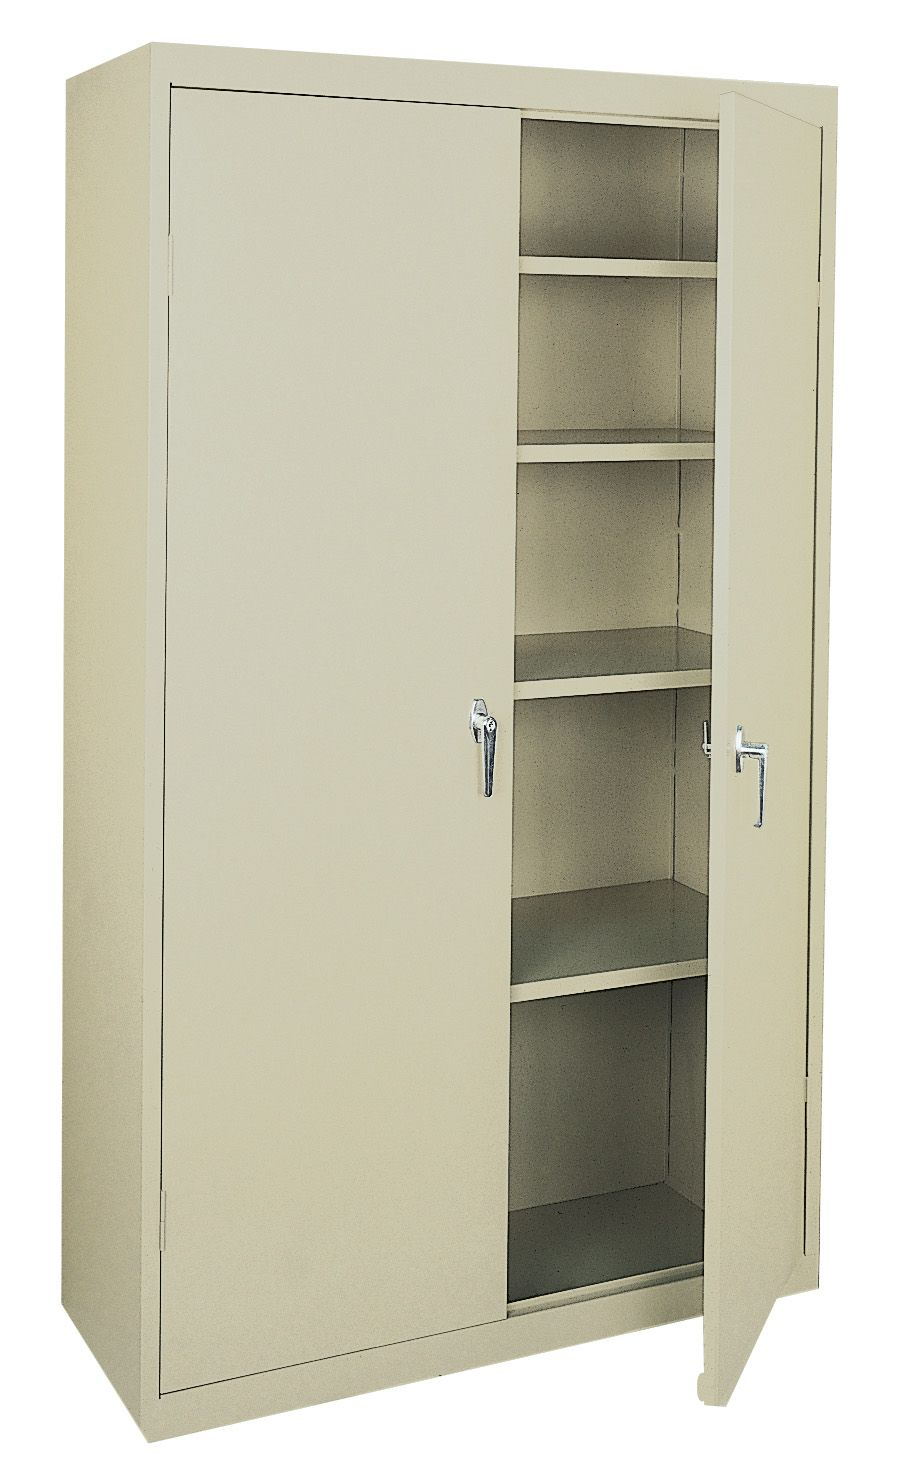 storage cabinets - Google Search | Ideas for the utility ...